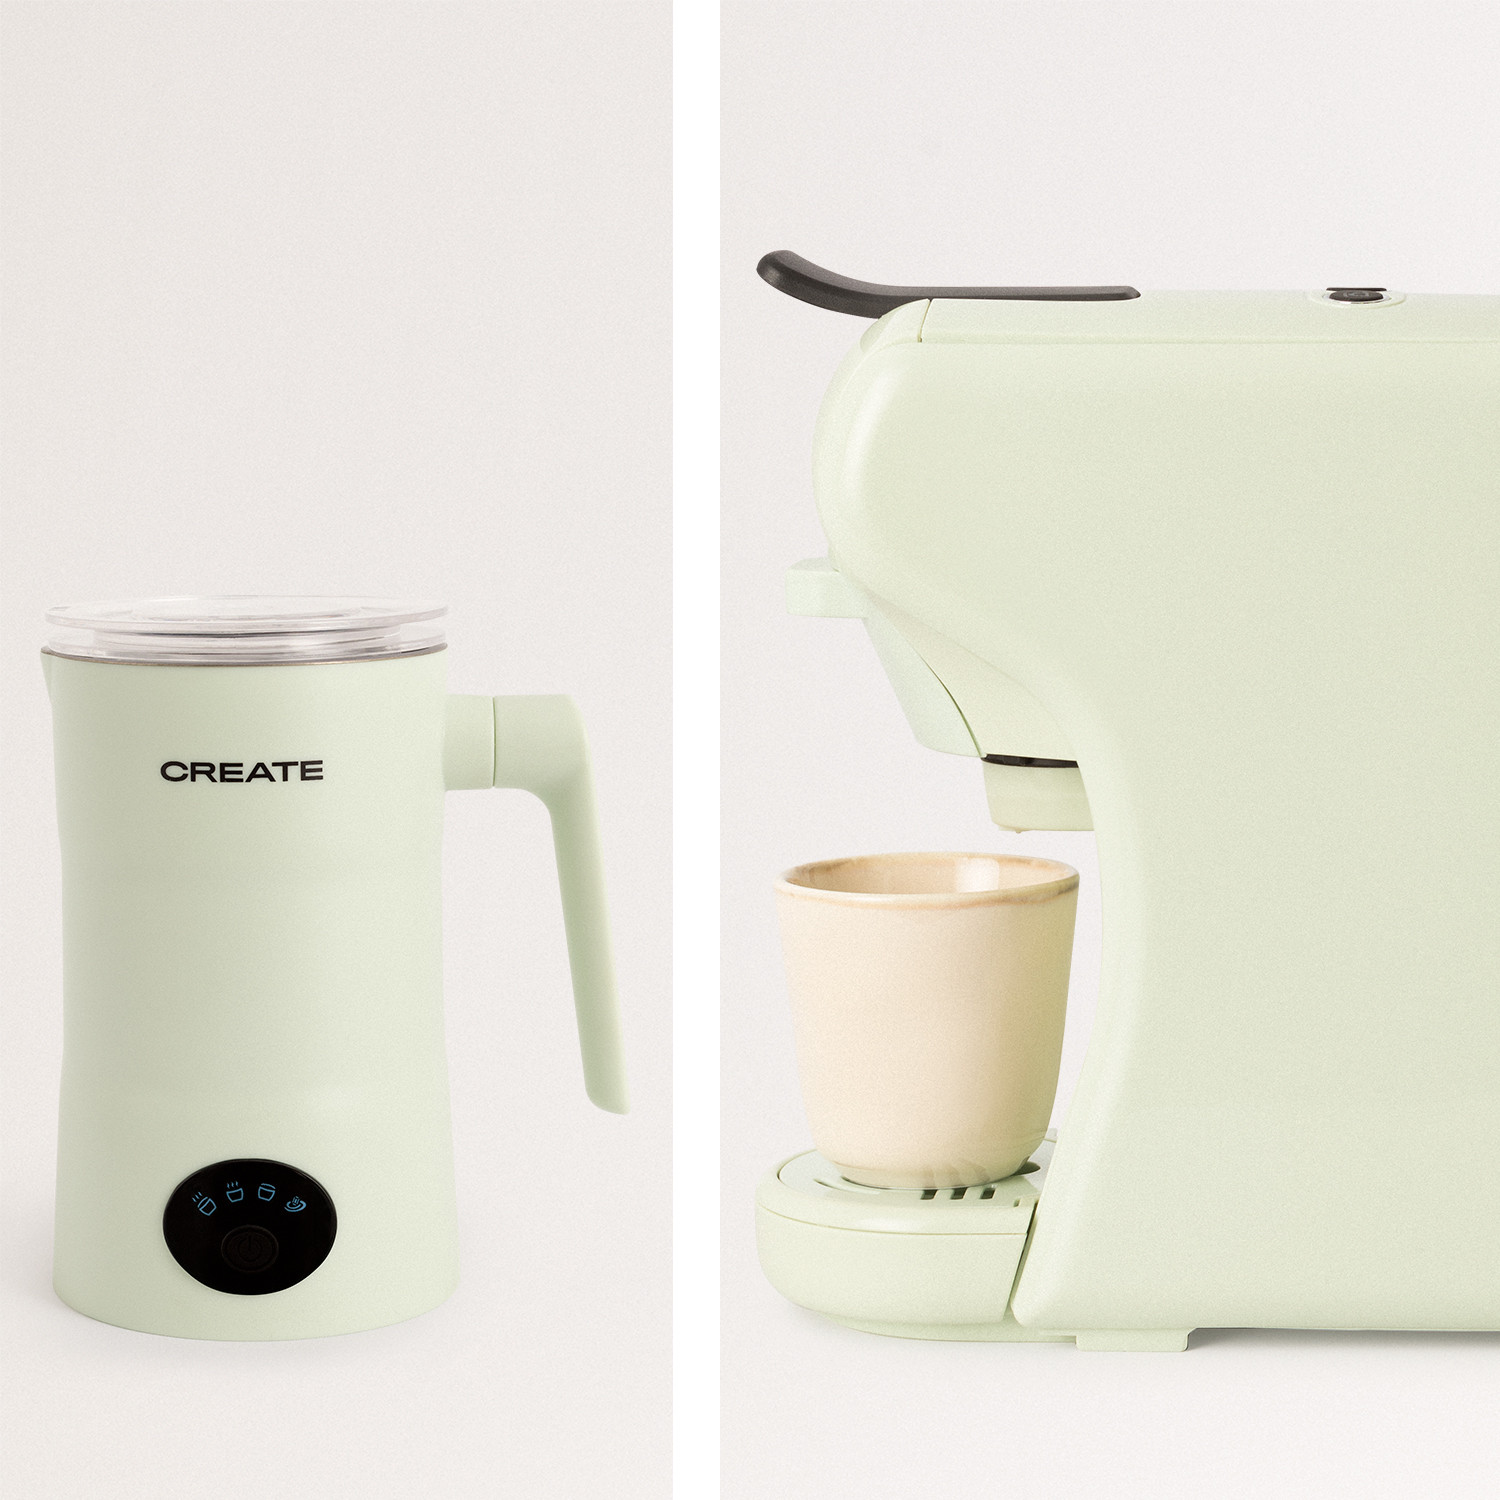 PACK - POTTS STYLANCE Multi-capsule espresso machine + MILKFROTHER PRO Milk and chocolate warmer frother, imagen de galería 1